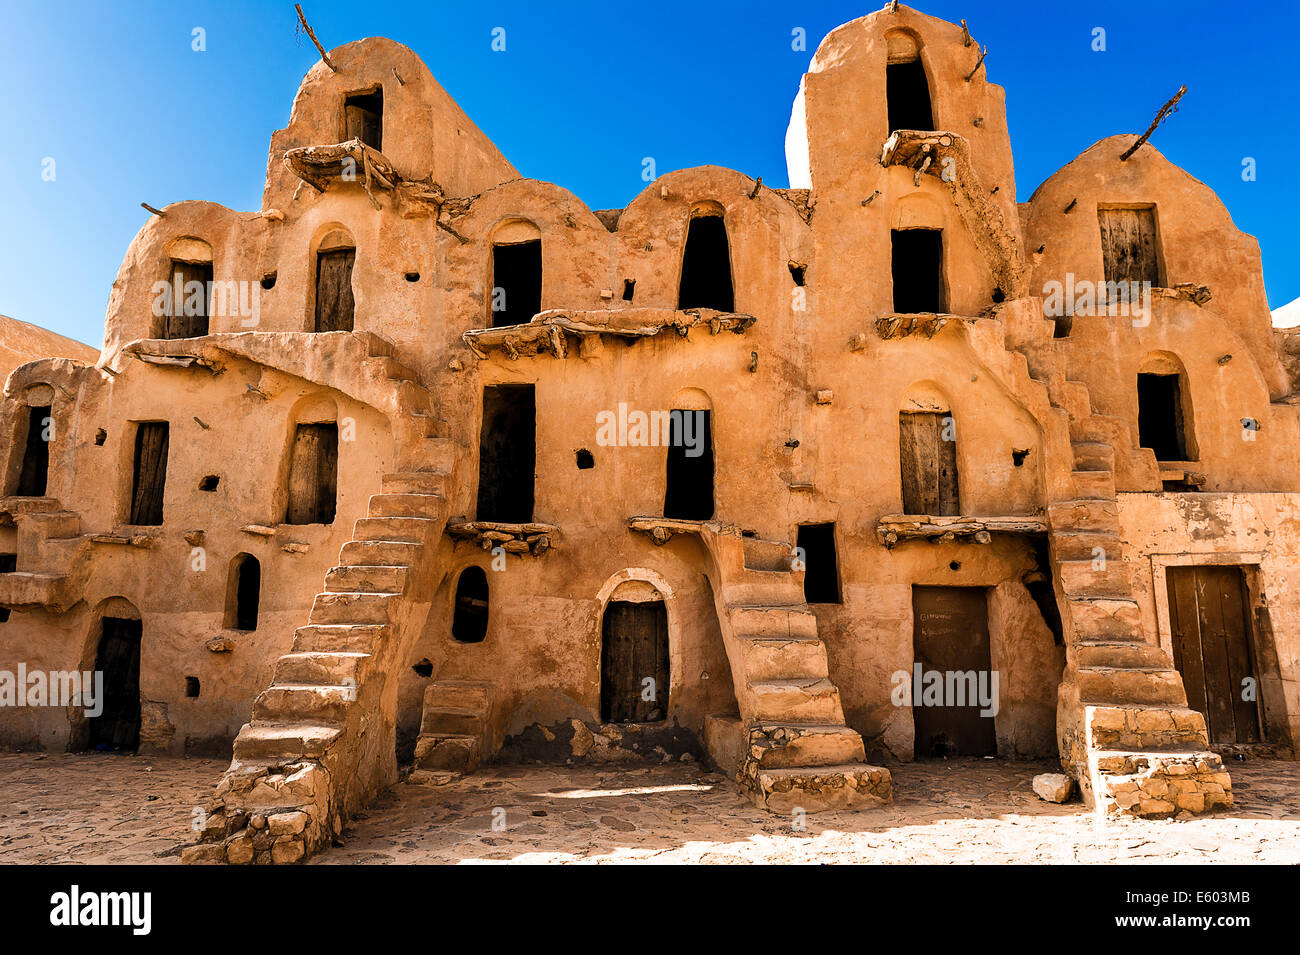 Africa, North Africa, Maghreb, South Tunisia. Governorat of Tataouine. Ksar Ouled Soltane. Stock Photo